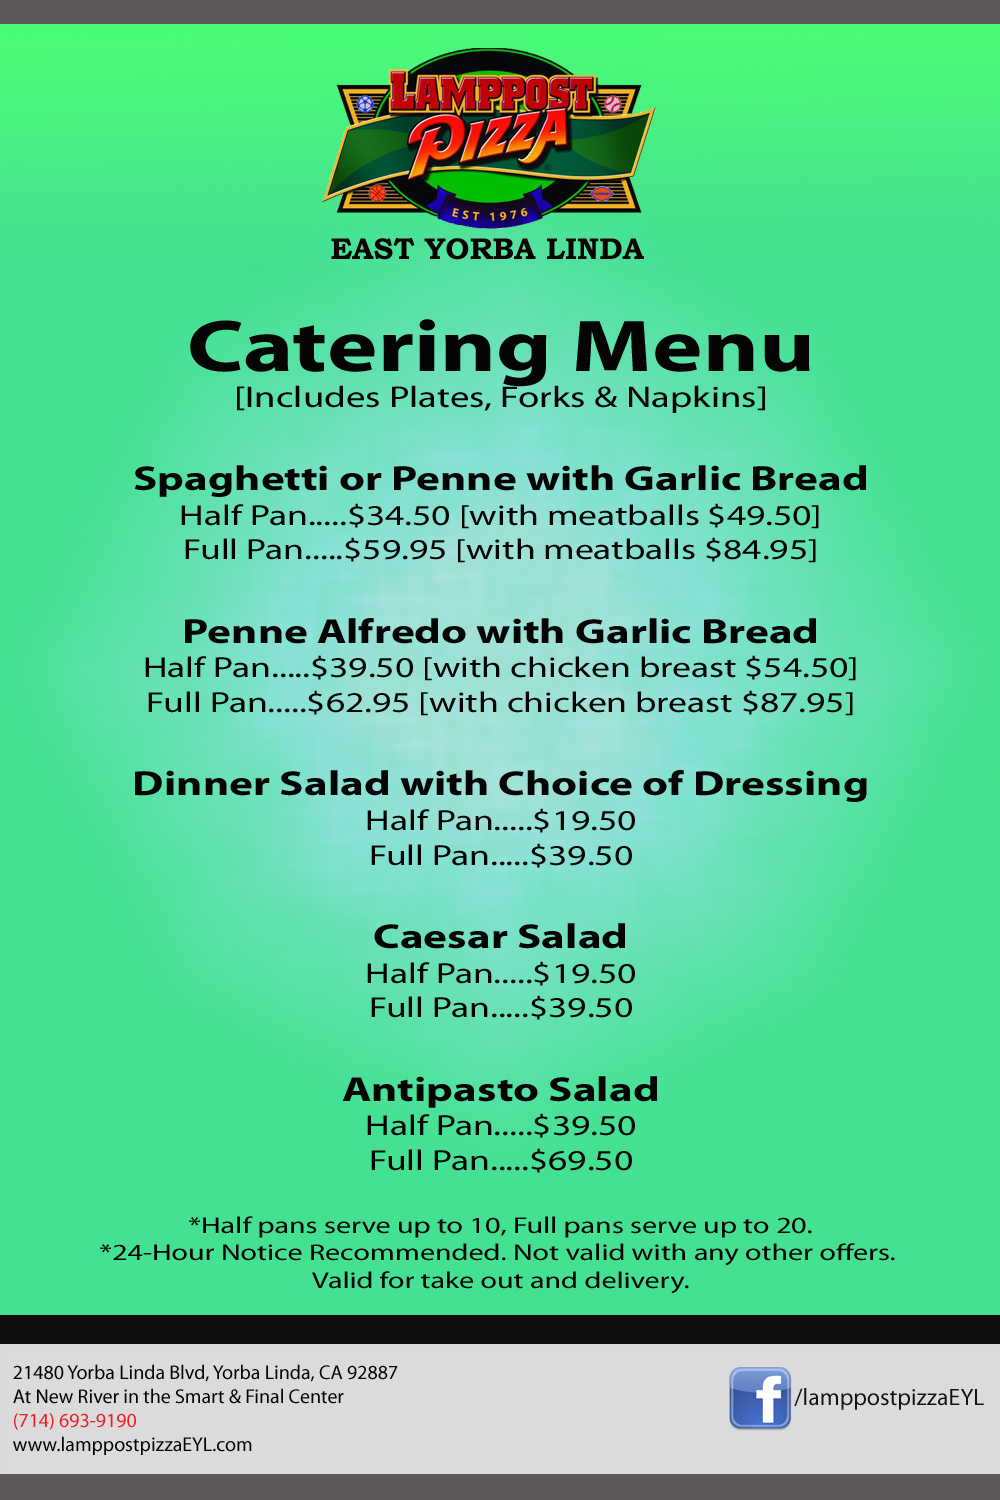 Lamppost Pizza Catering Menu